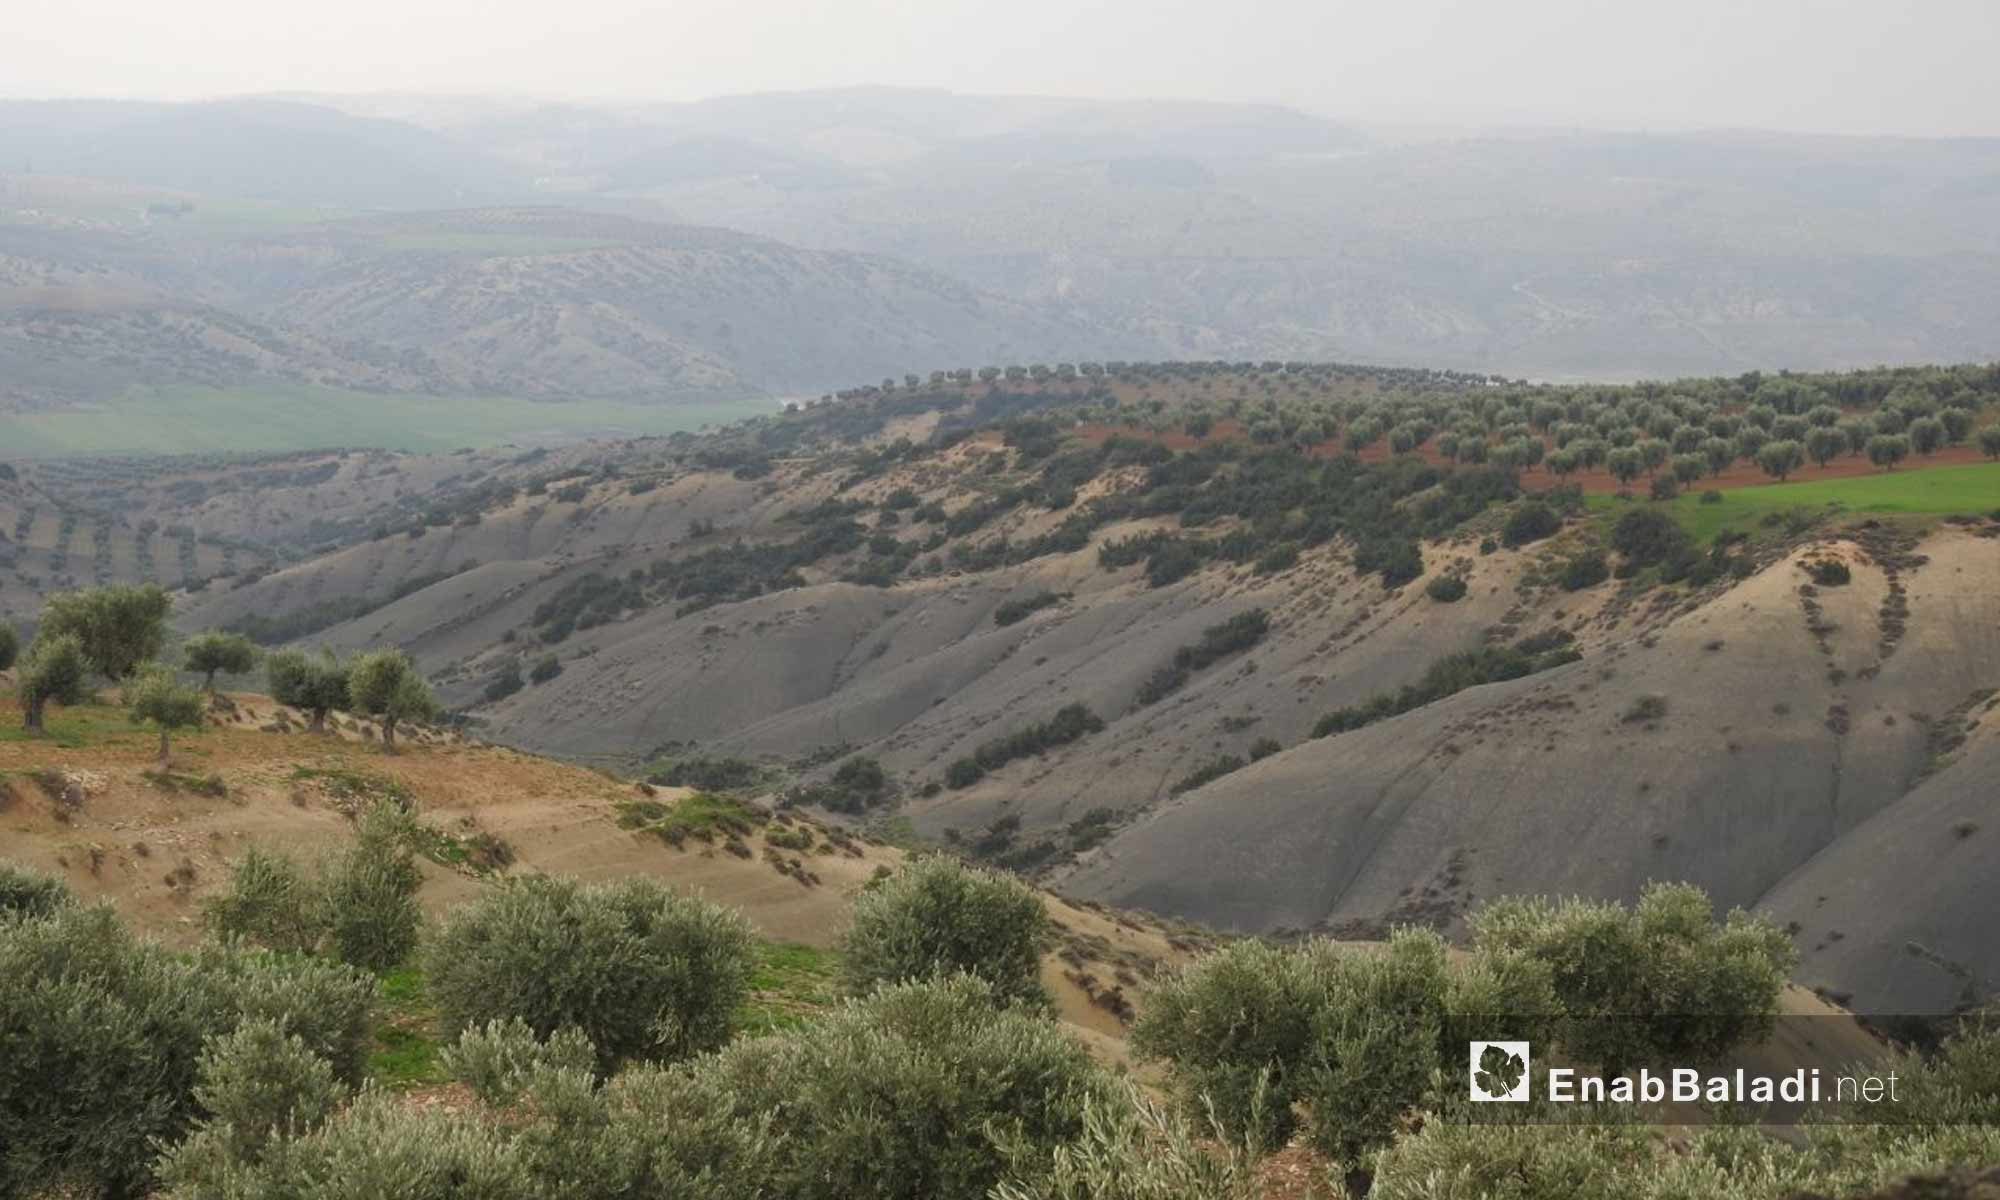 Large areas of olive trees in the countryside of Afrin - 2 March 2018 (Enab Baladi)